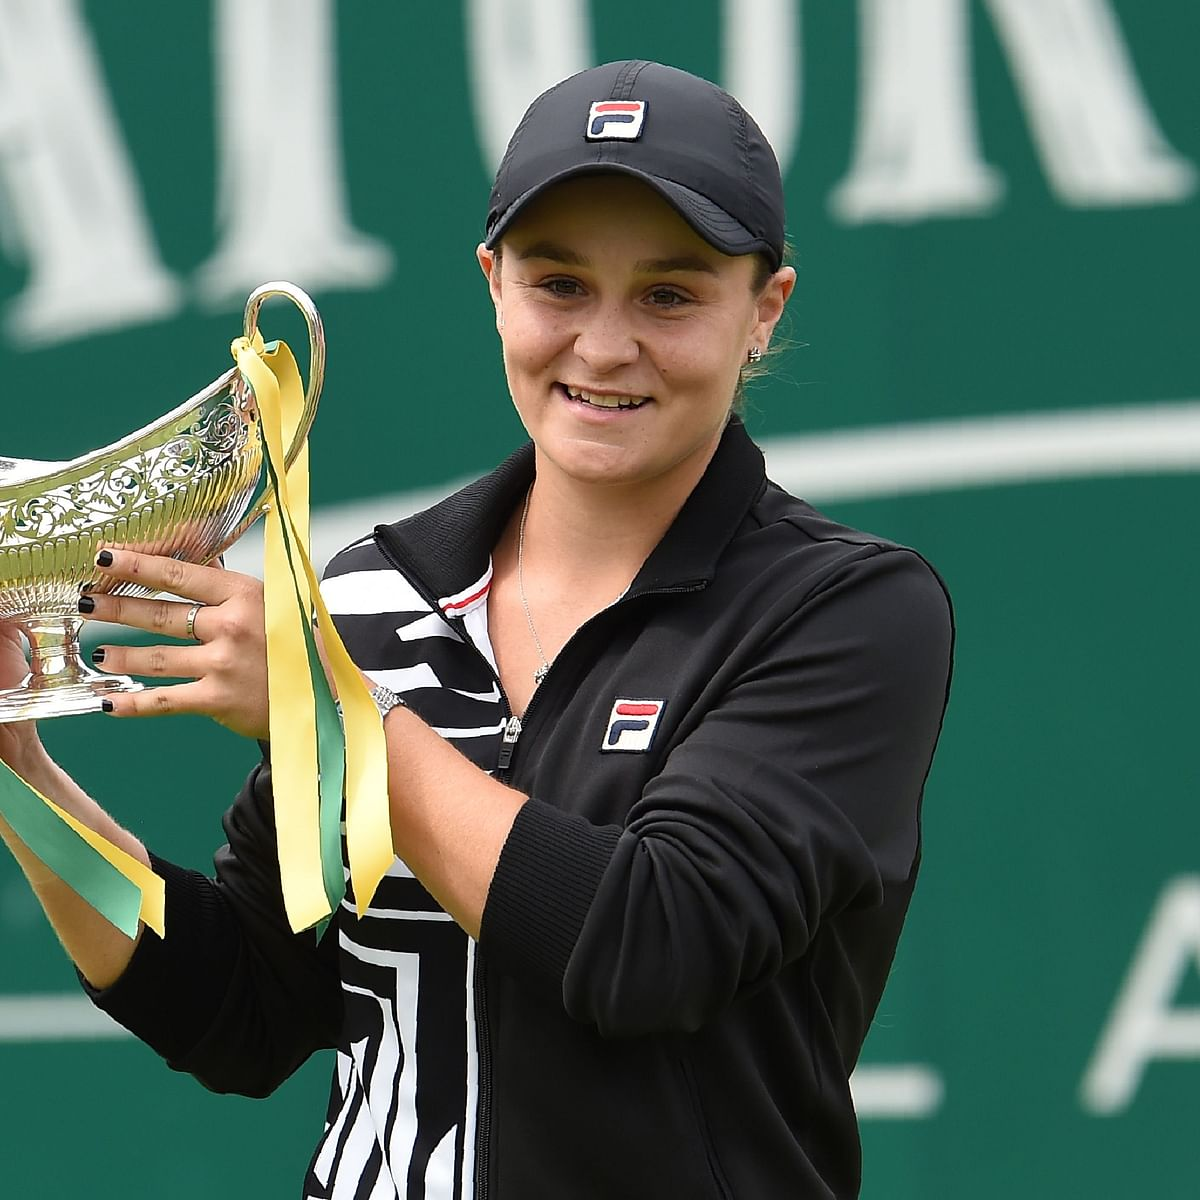 Women's tennis: Ash Barty loses no. 1 ranking to Naomi Osaka